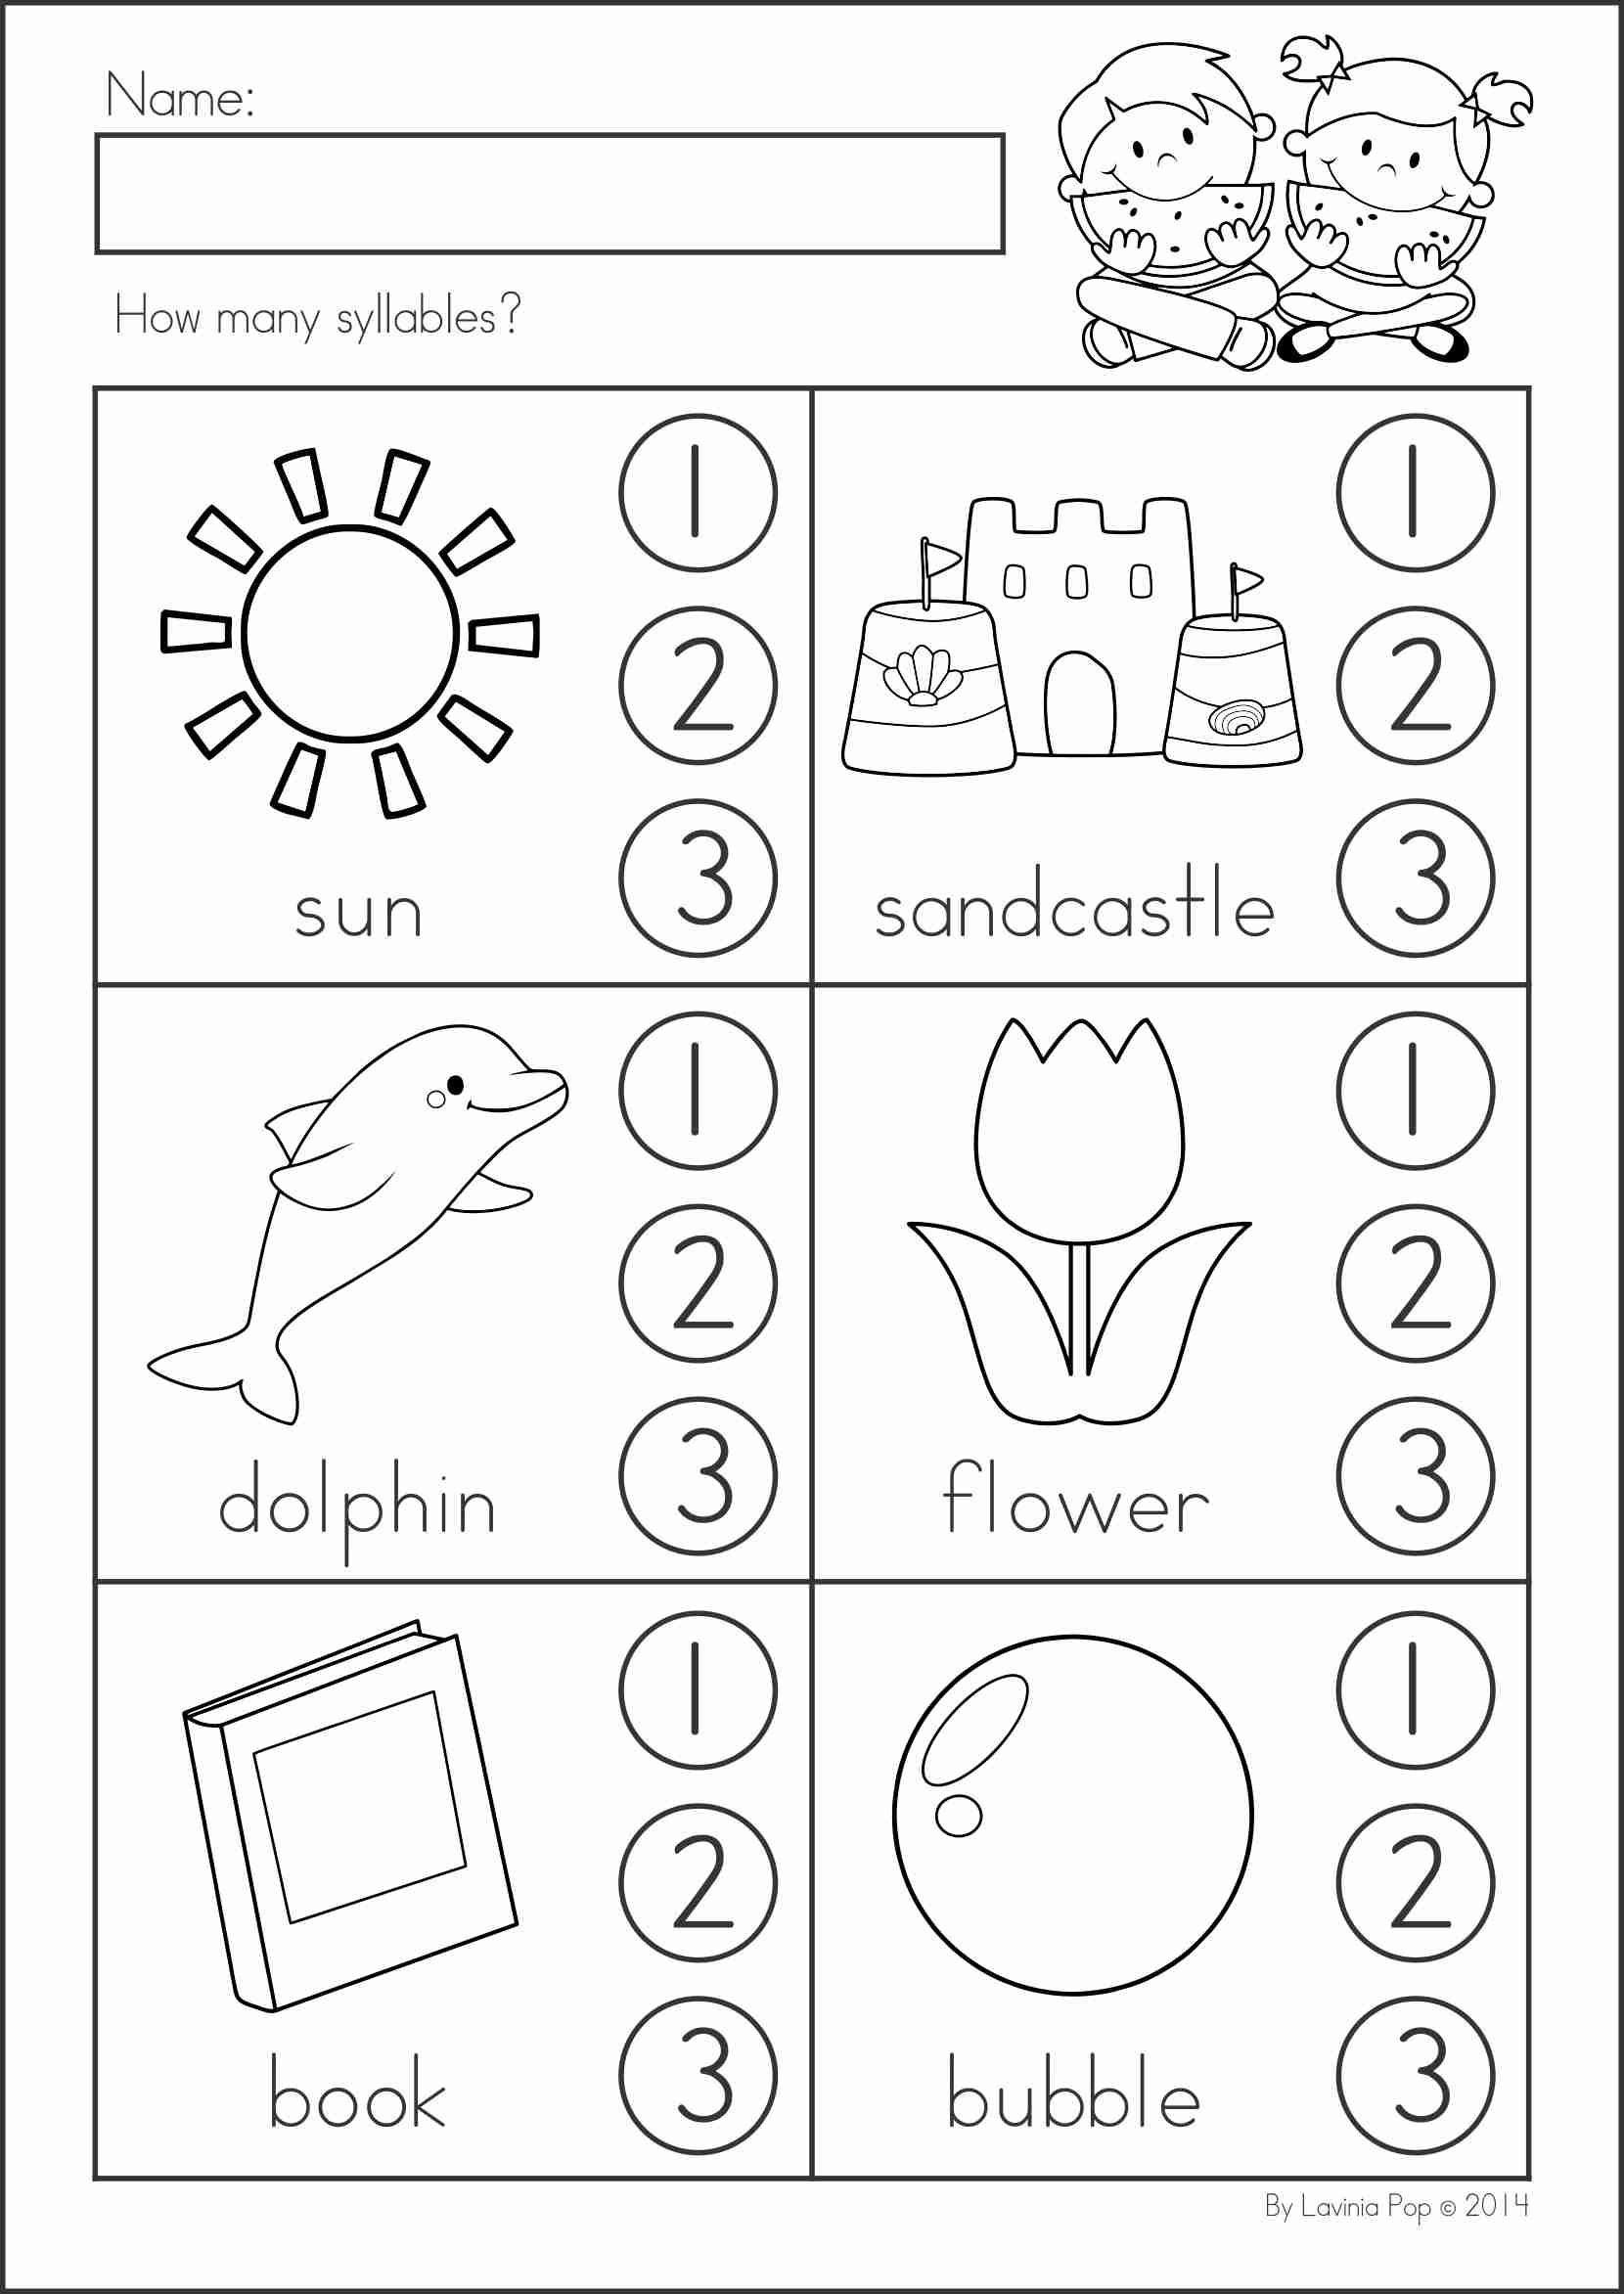 Free Syllable Worksheets For Kindergarten Summer Review